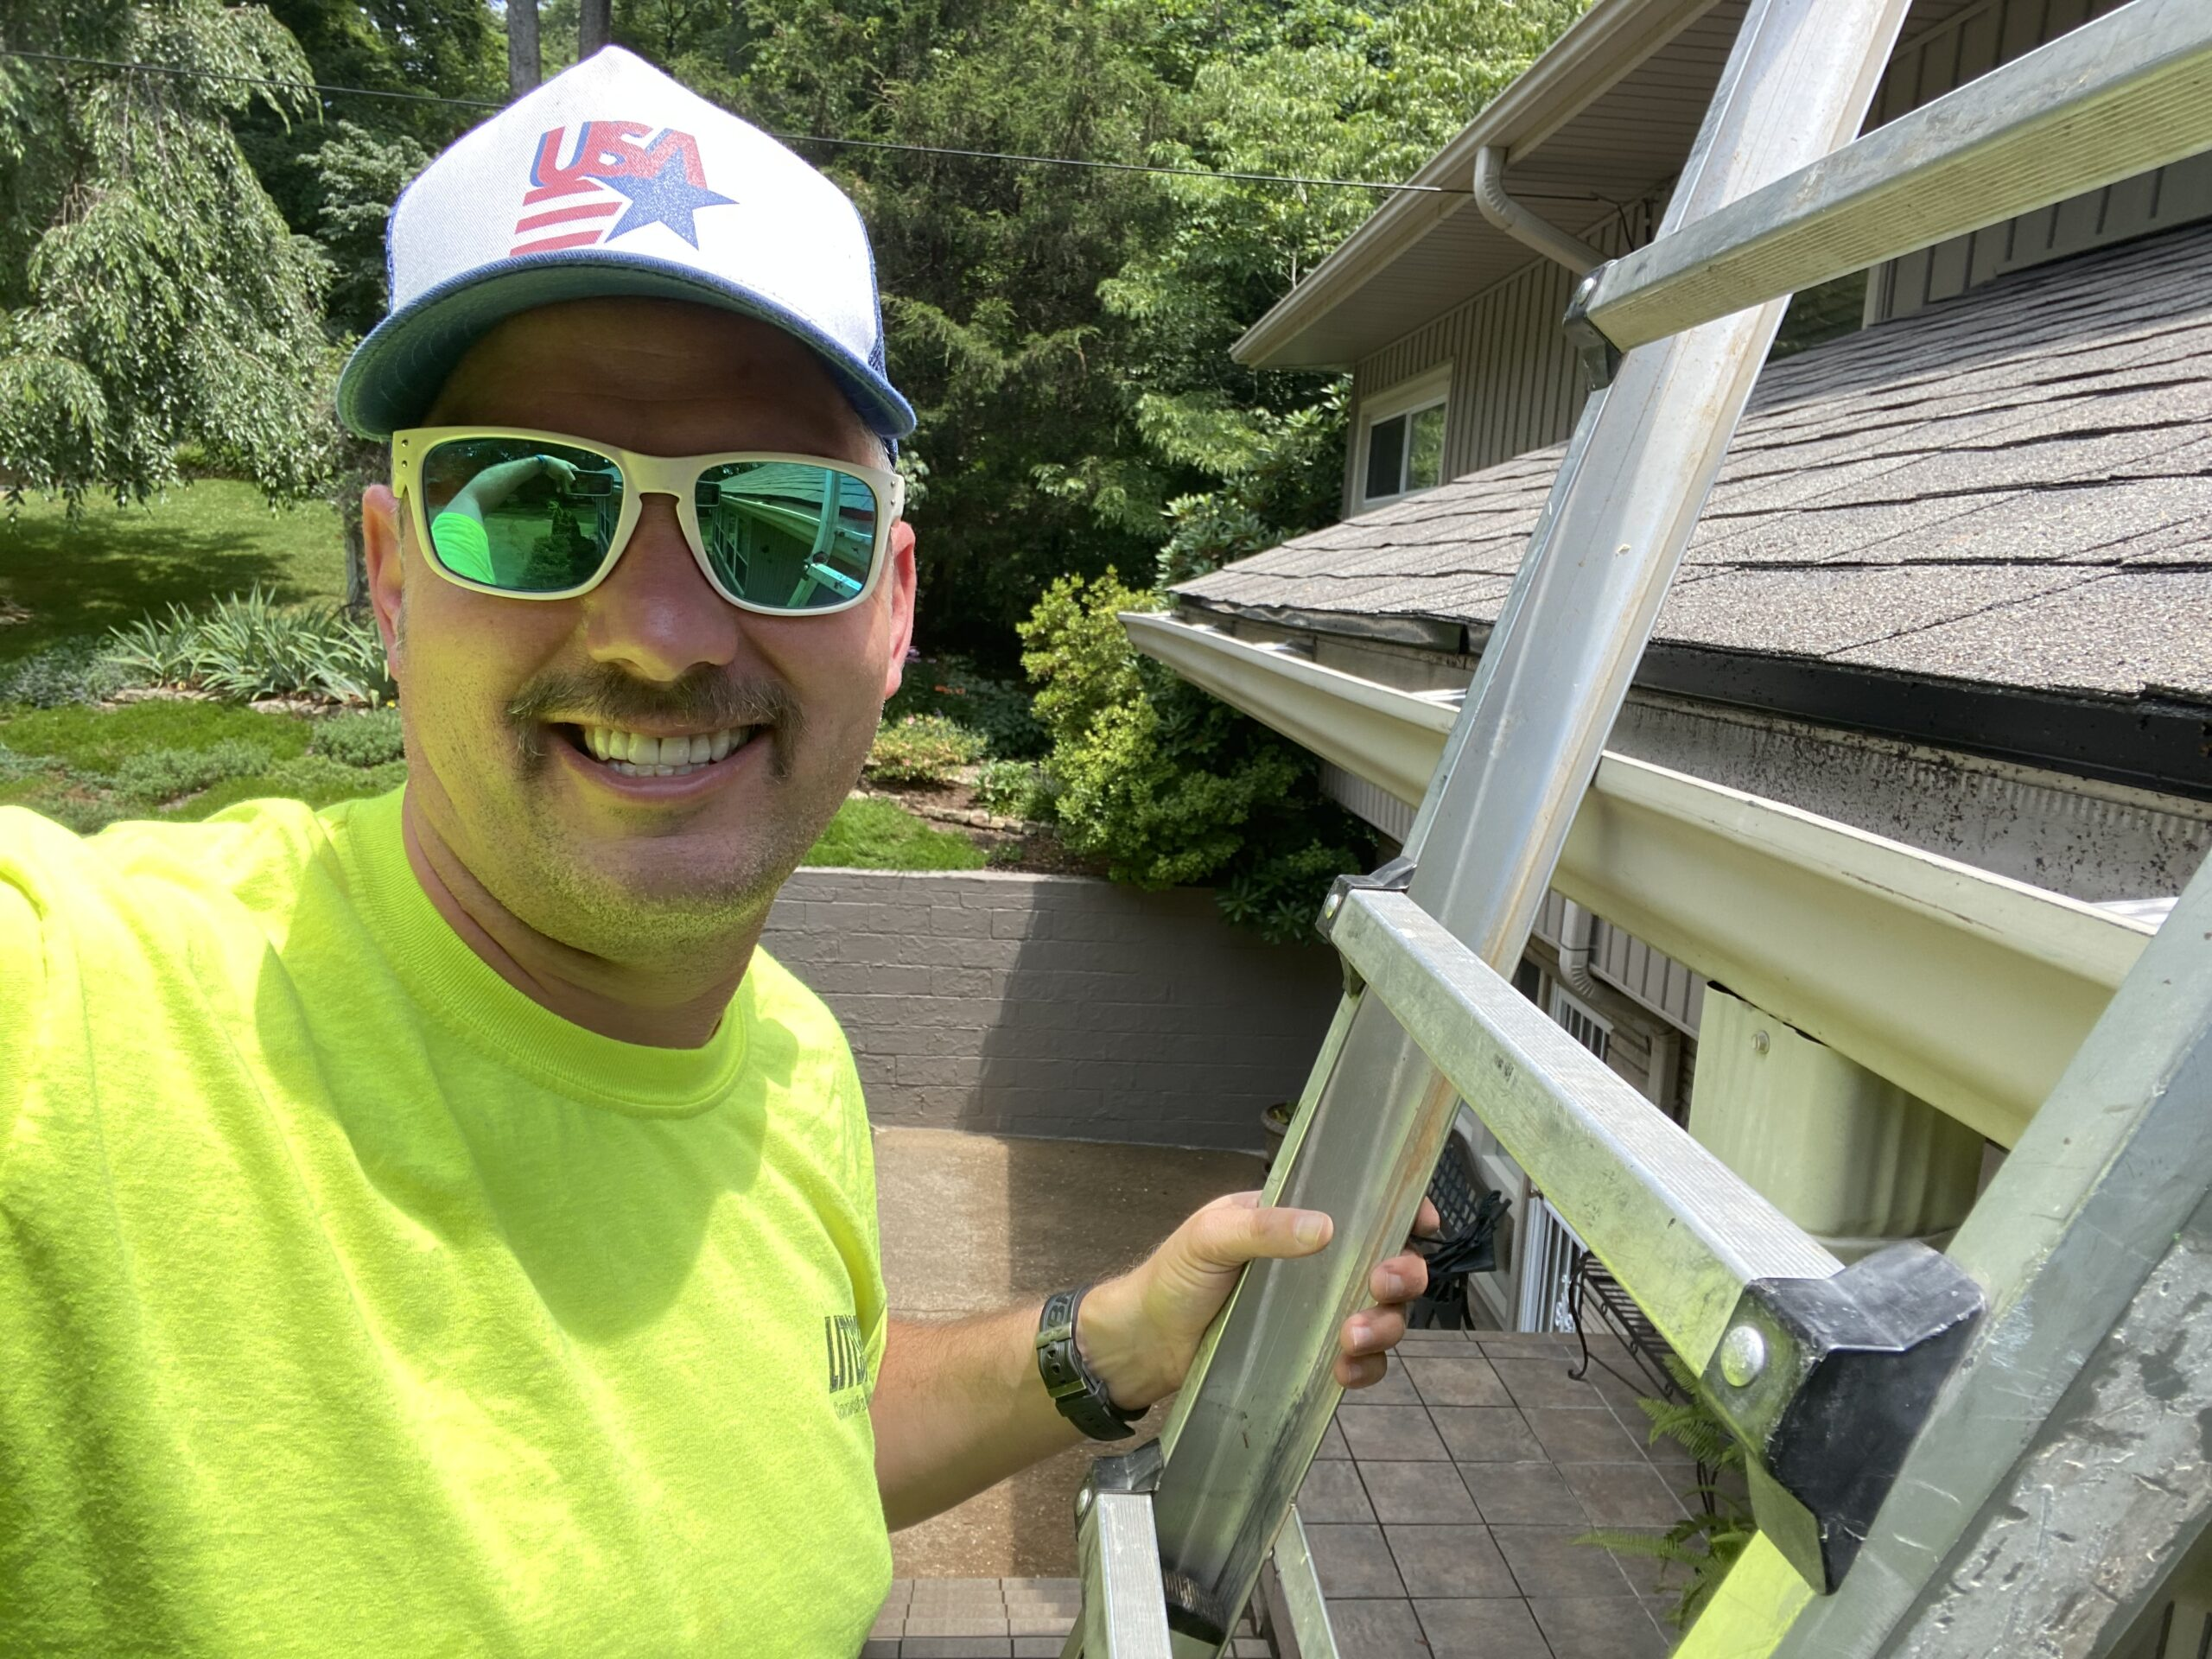 This is a picture of the owner of Litespeed Construction on a ladder.